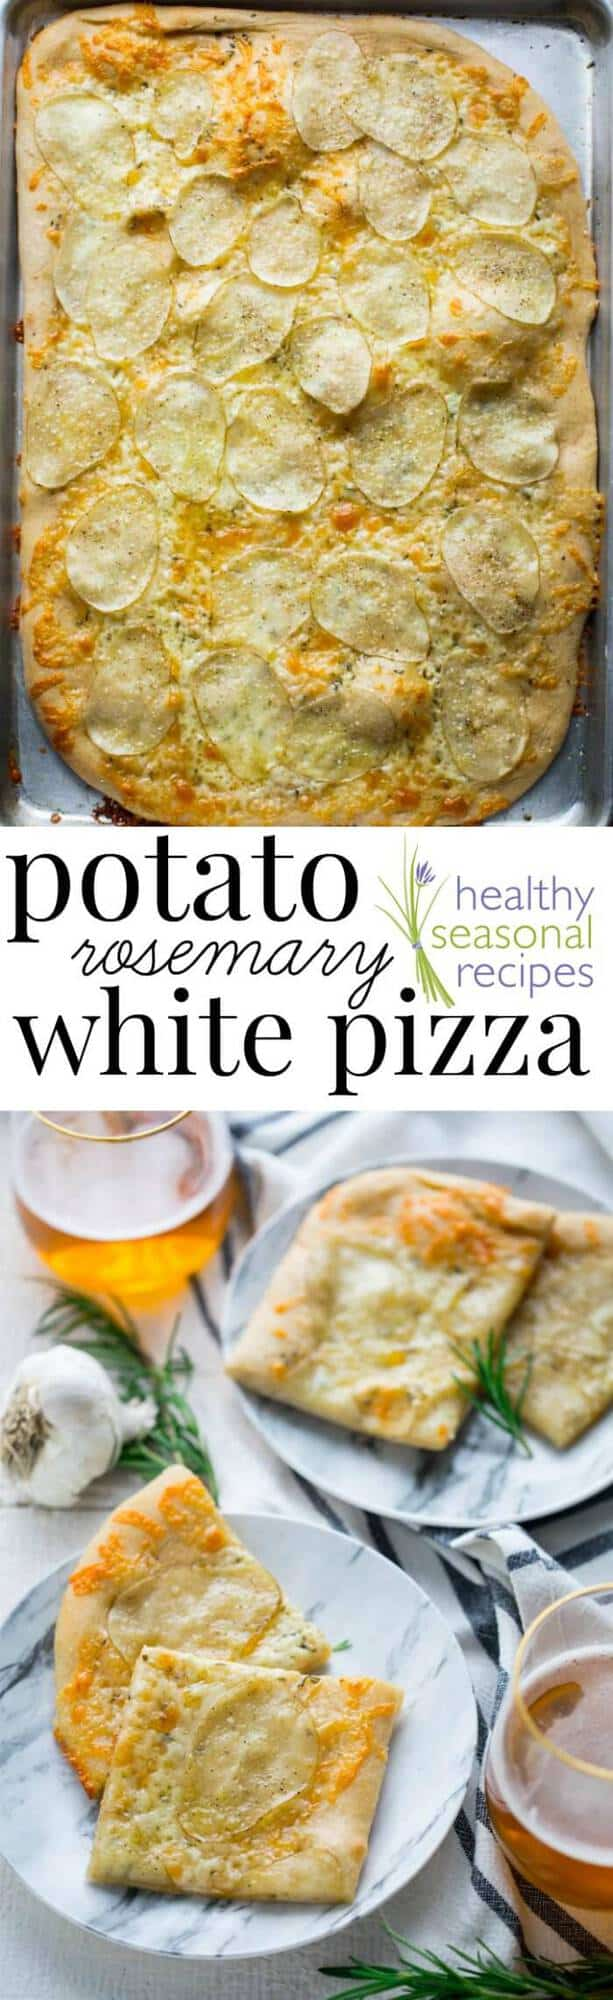 Have you heard of potato pizza before? If not, keep an open mind, and prepare your taste buds for a surprisingly delicious combination. In this white pizza version, I have a bit of rosemary, garlic and cheddar cheese to make it super savory and yummy! #vegetarian #pizza #whitepizza #potato #cheddar